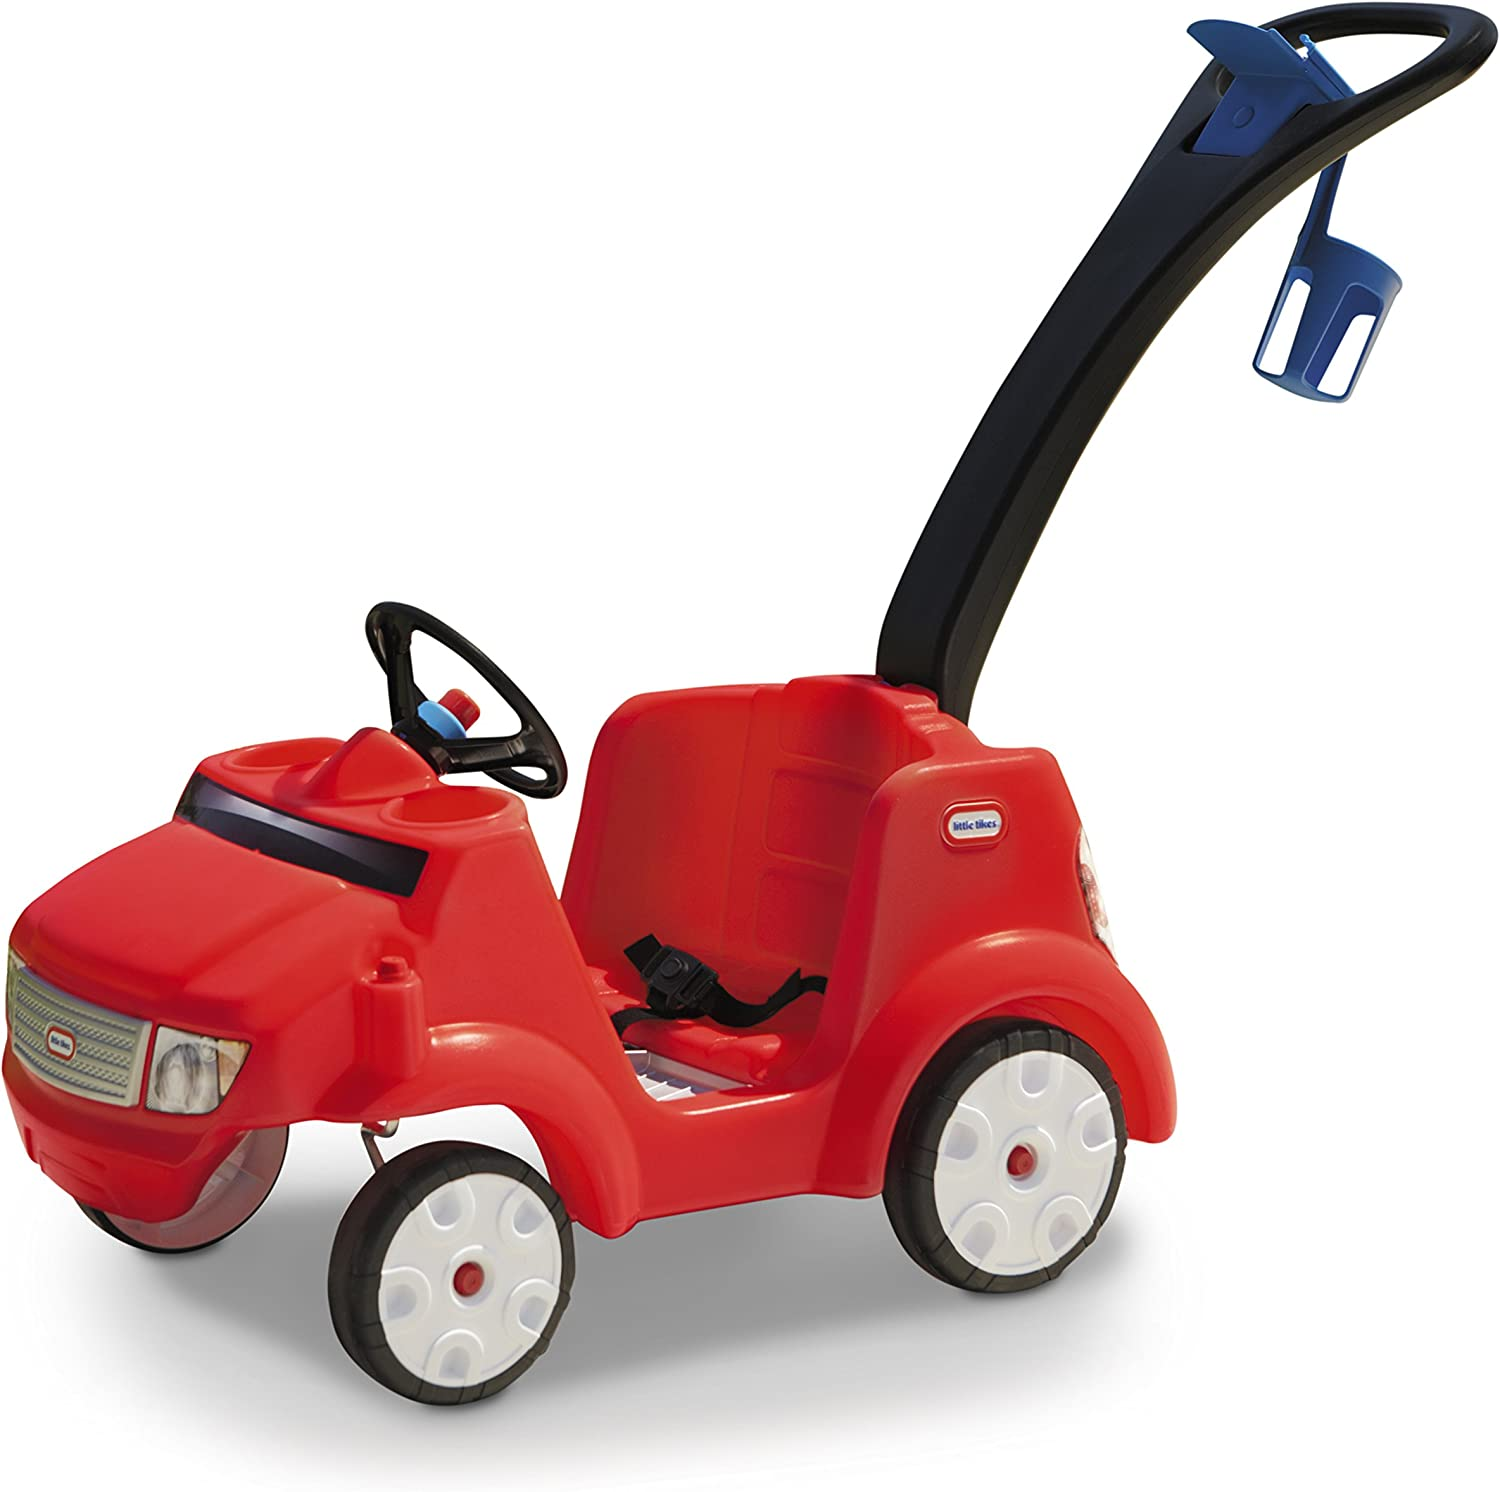 Little Tikes Quiet Drive Buggy - Red Ride On (Amazon Exclusive)